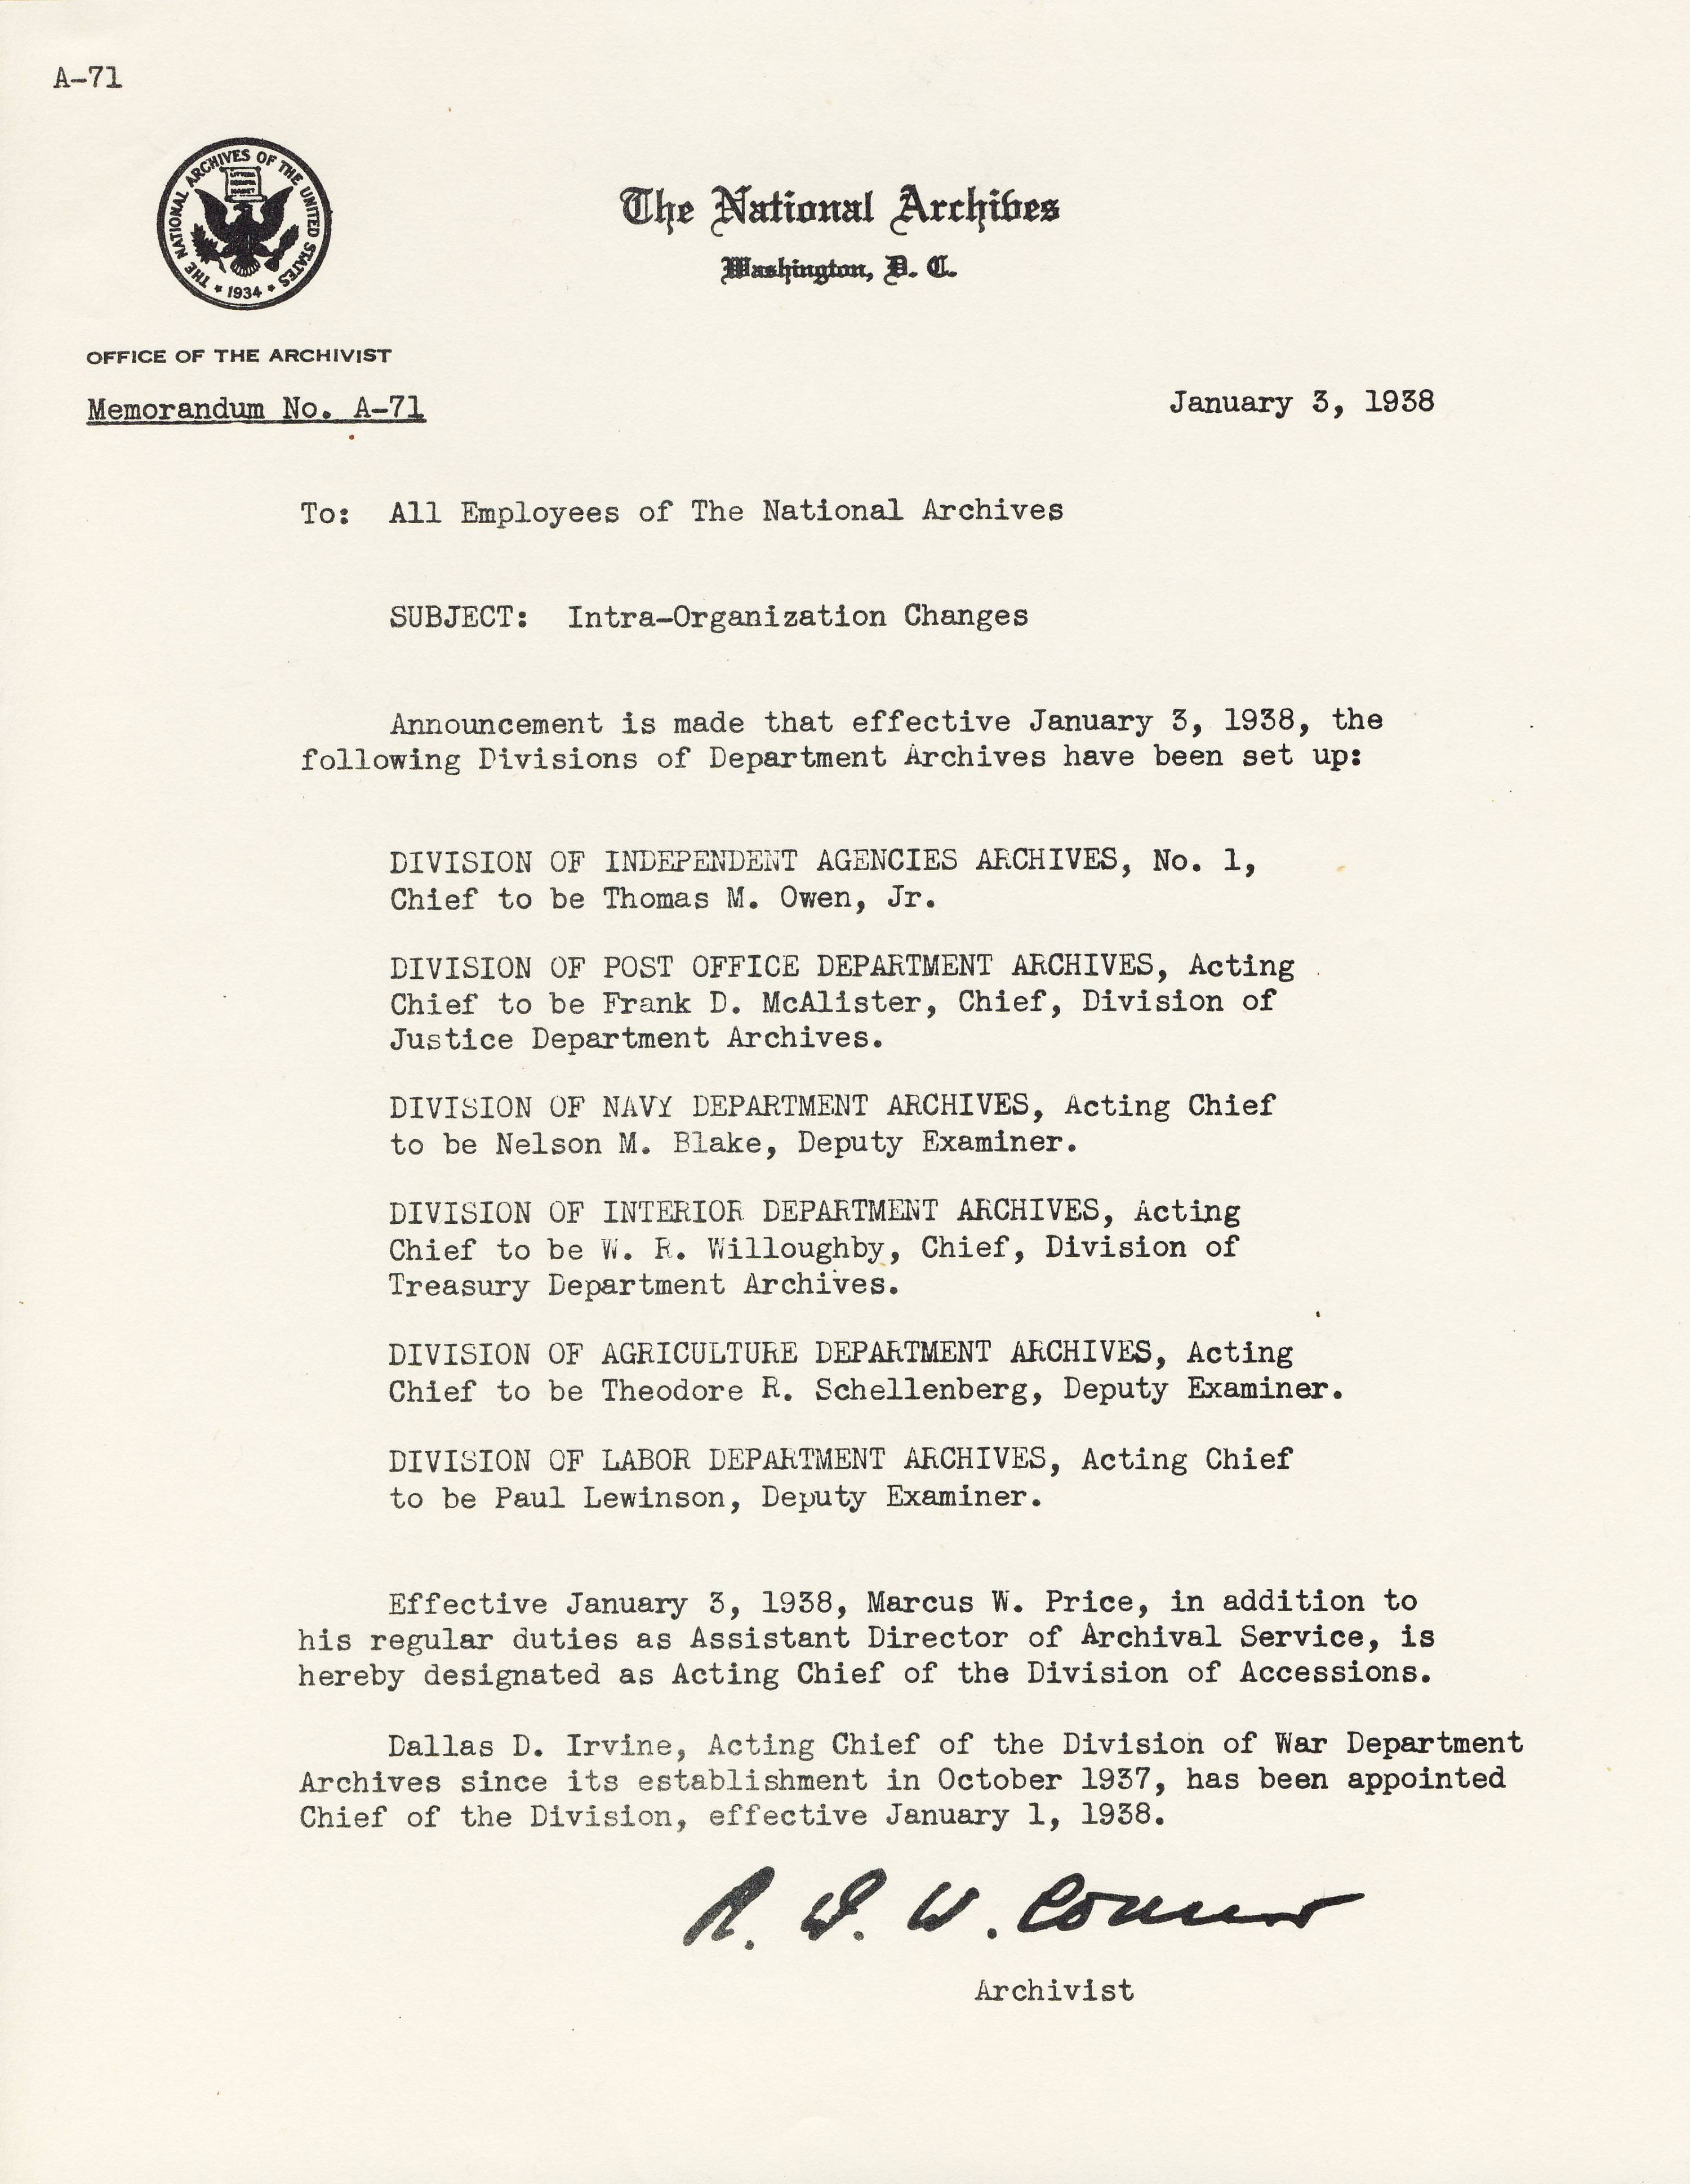 RG 64, A1 9 - Memo A-71 Intra-Organization Changes, Jan. 3, 1938.jpg